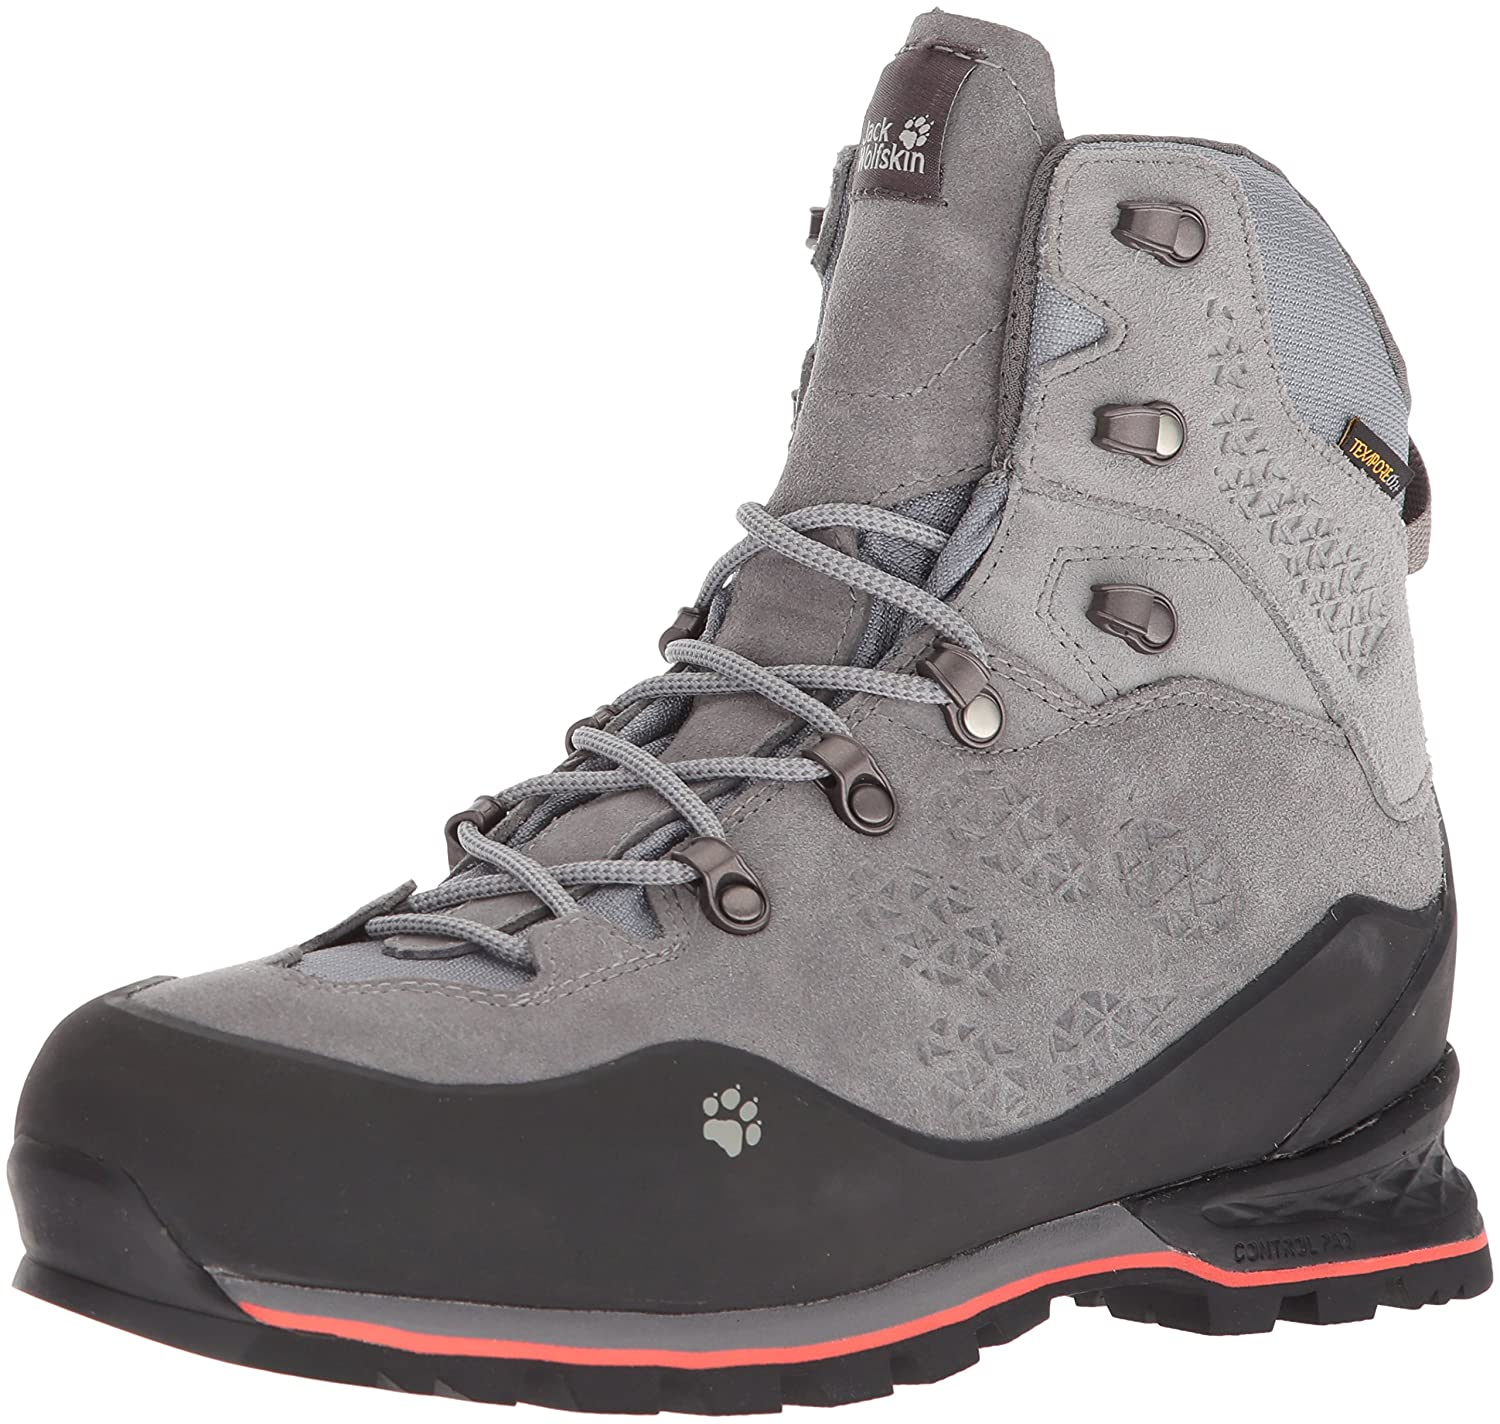 Jack Wolfskin Women's Wilderness Texapore Mid W Mountaineering Boot B0785HJMB6 US Women's 10 D US|Tarmac Grey